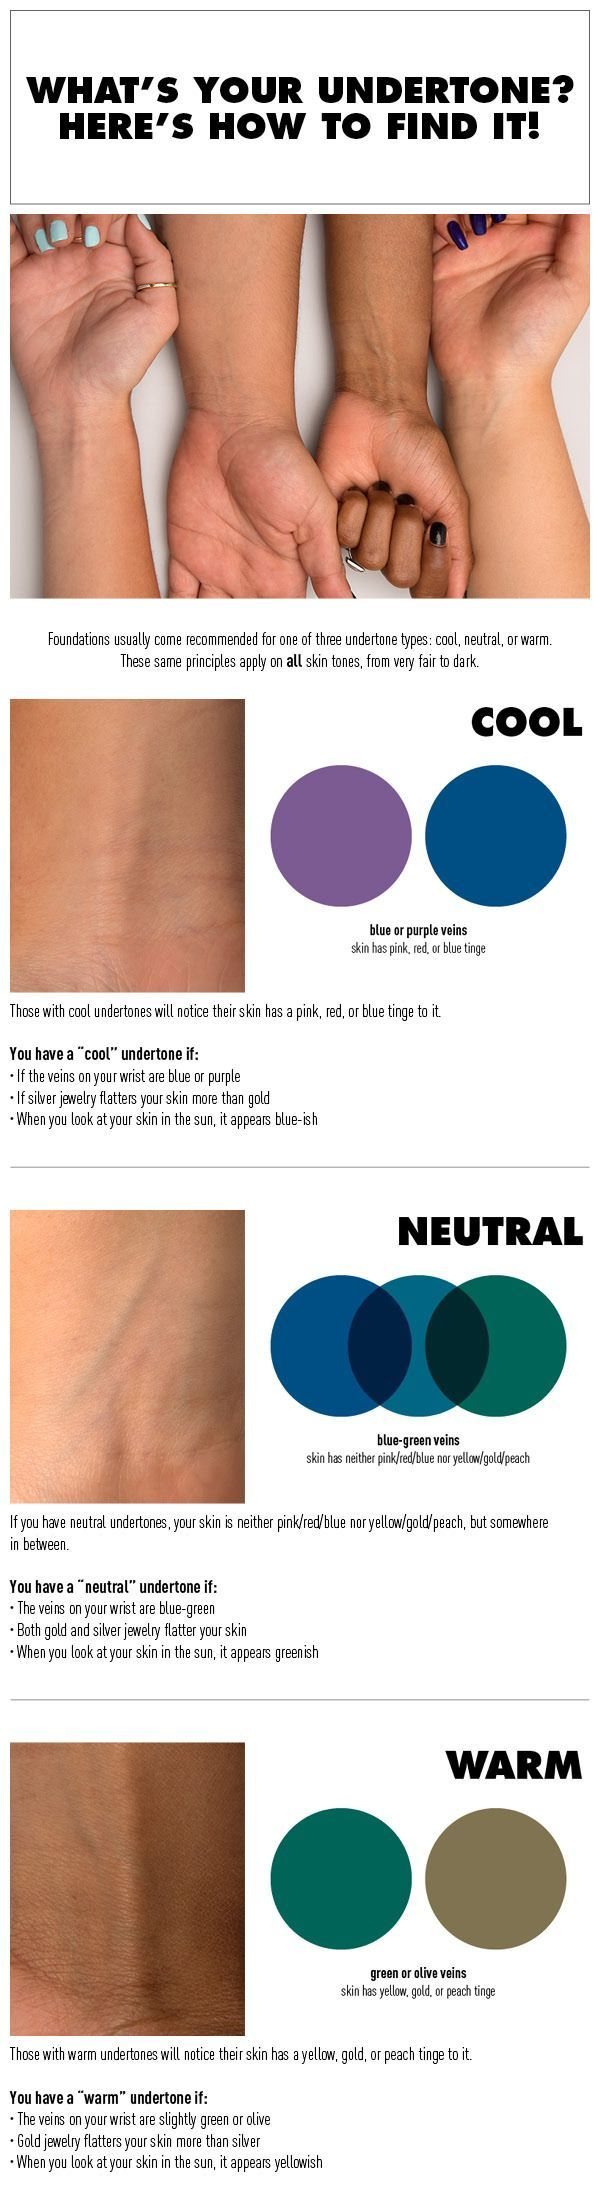 The key to figuring out the most flattering colors for yourself is in the color of your skin's undertones. Here is a great infographic that shows you how to determine if your skintone is warm, cool, or neutral. Image credit: unknown.